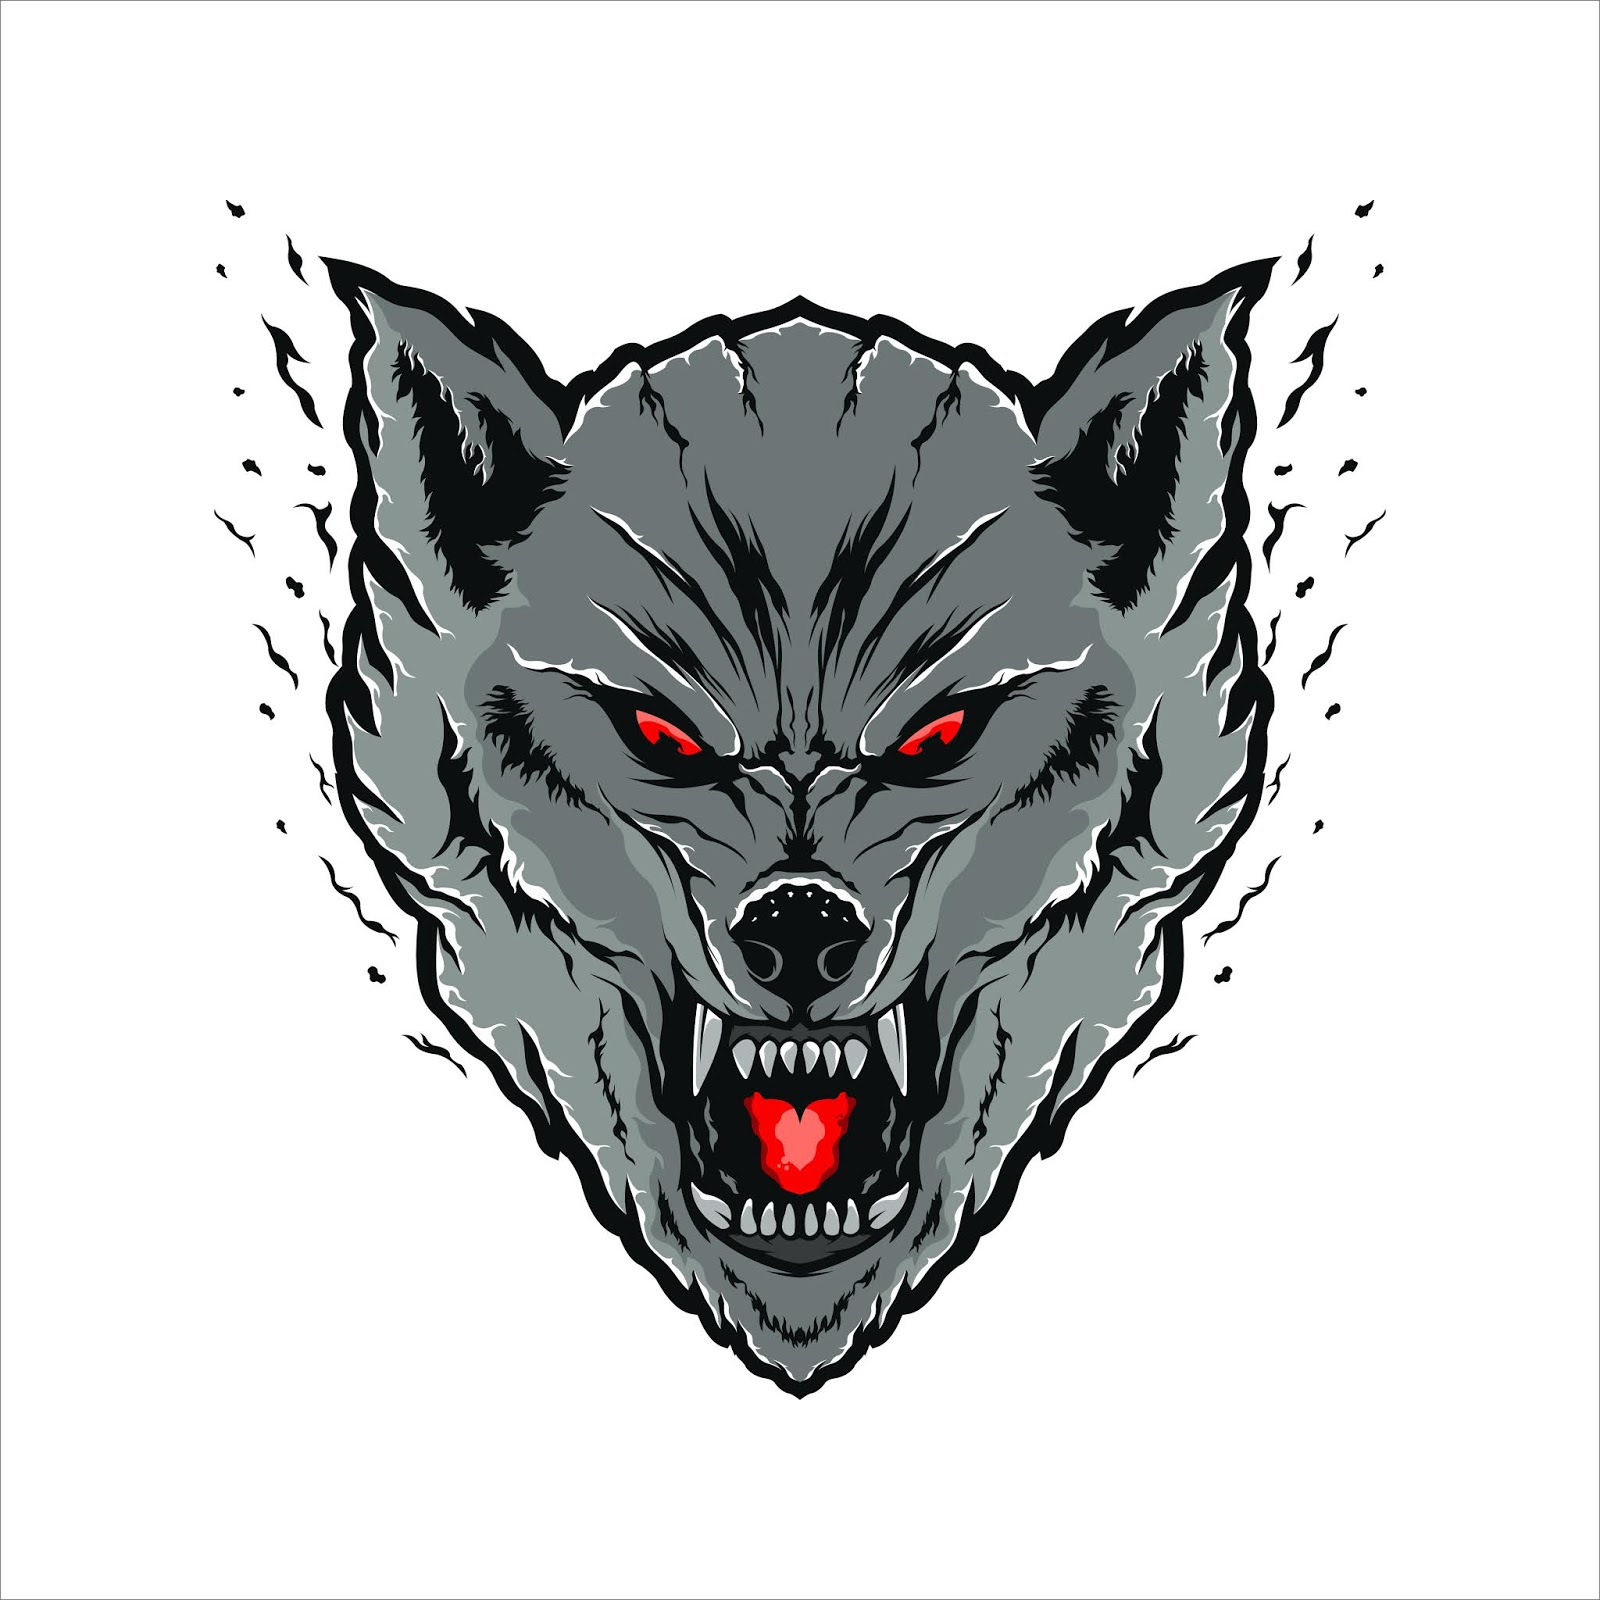 Wolves Head Illustration Free Download Vector CDR, AI, EPS and PNG Formats